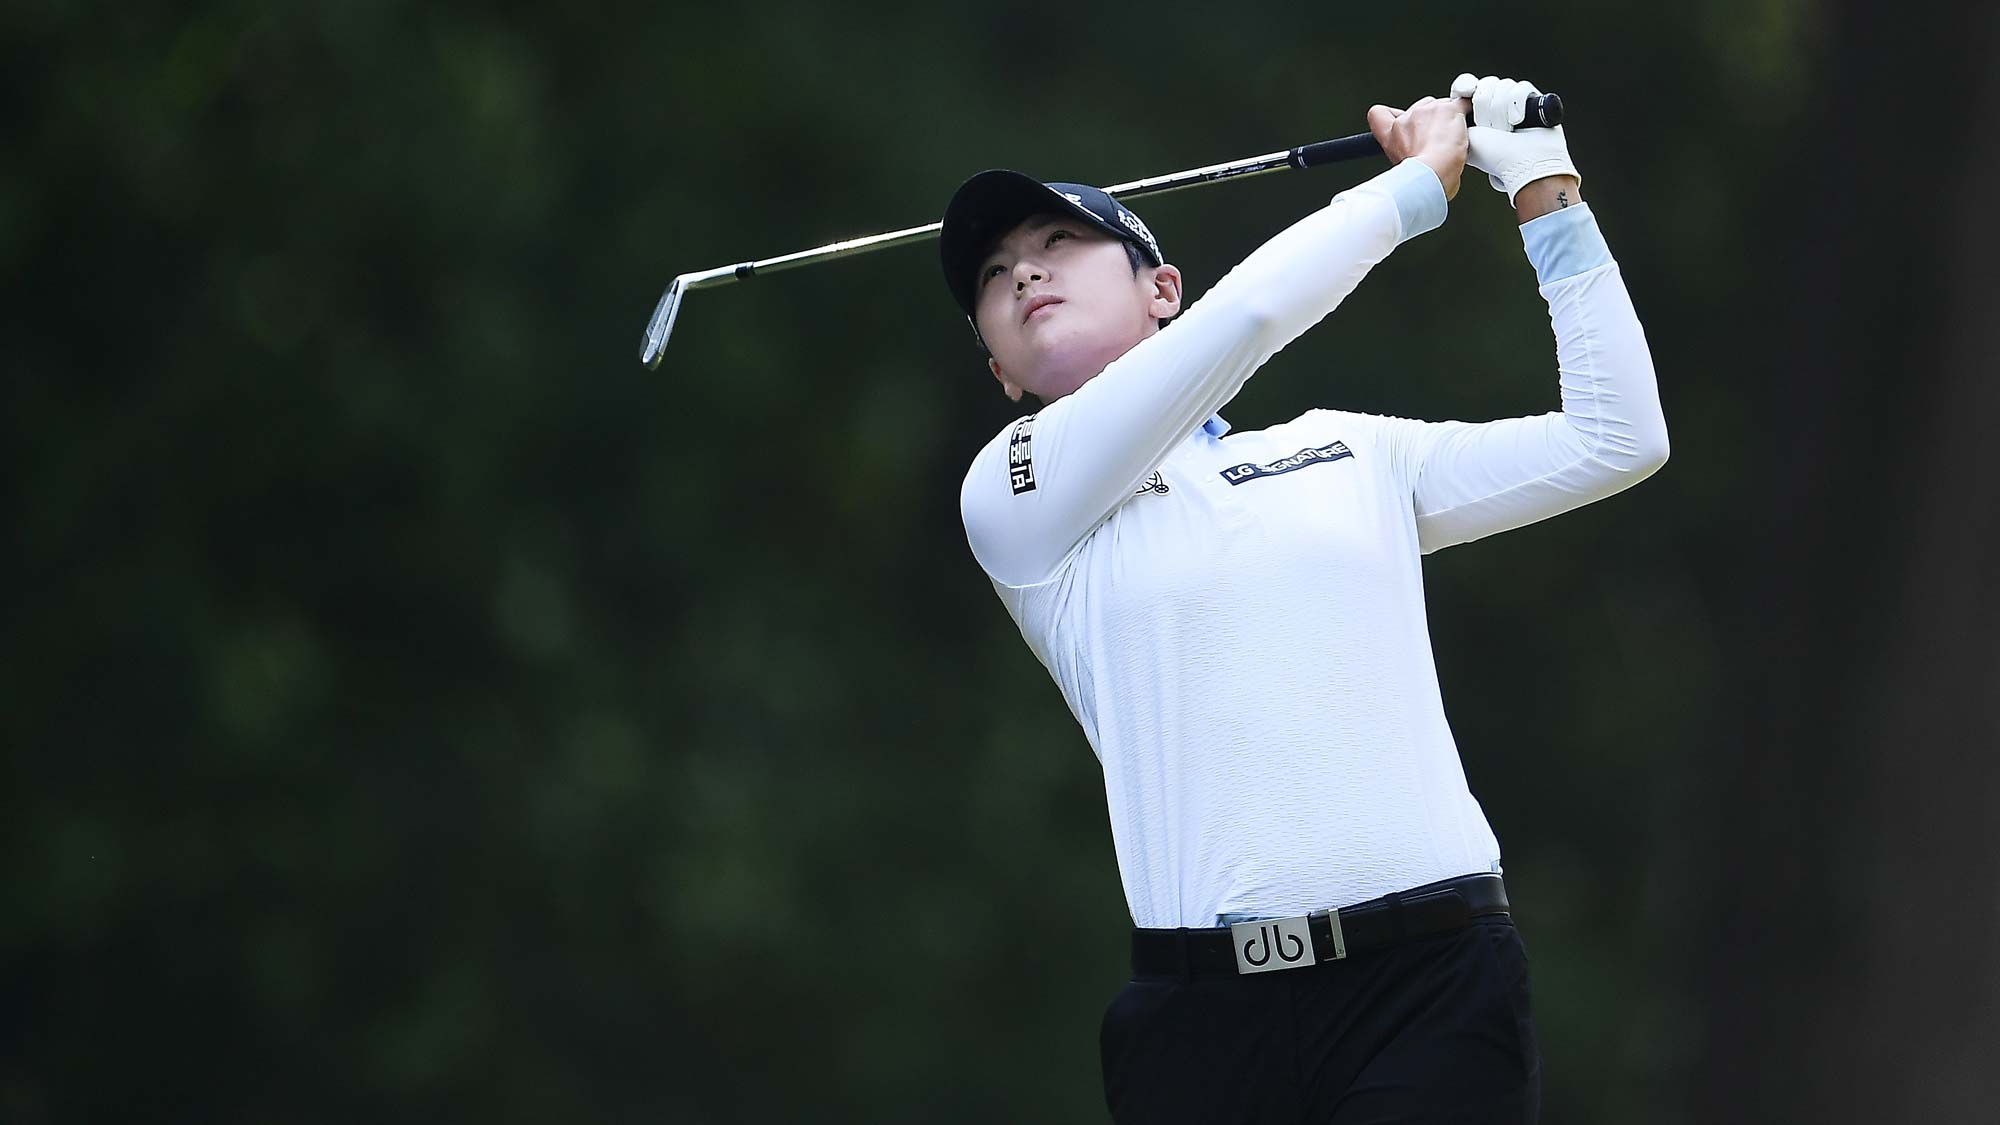 Sung Hyun Park of the Republic of Korea hits her tee shot on the second hole during the third round of the Thornberry Creek LPGA Classic